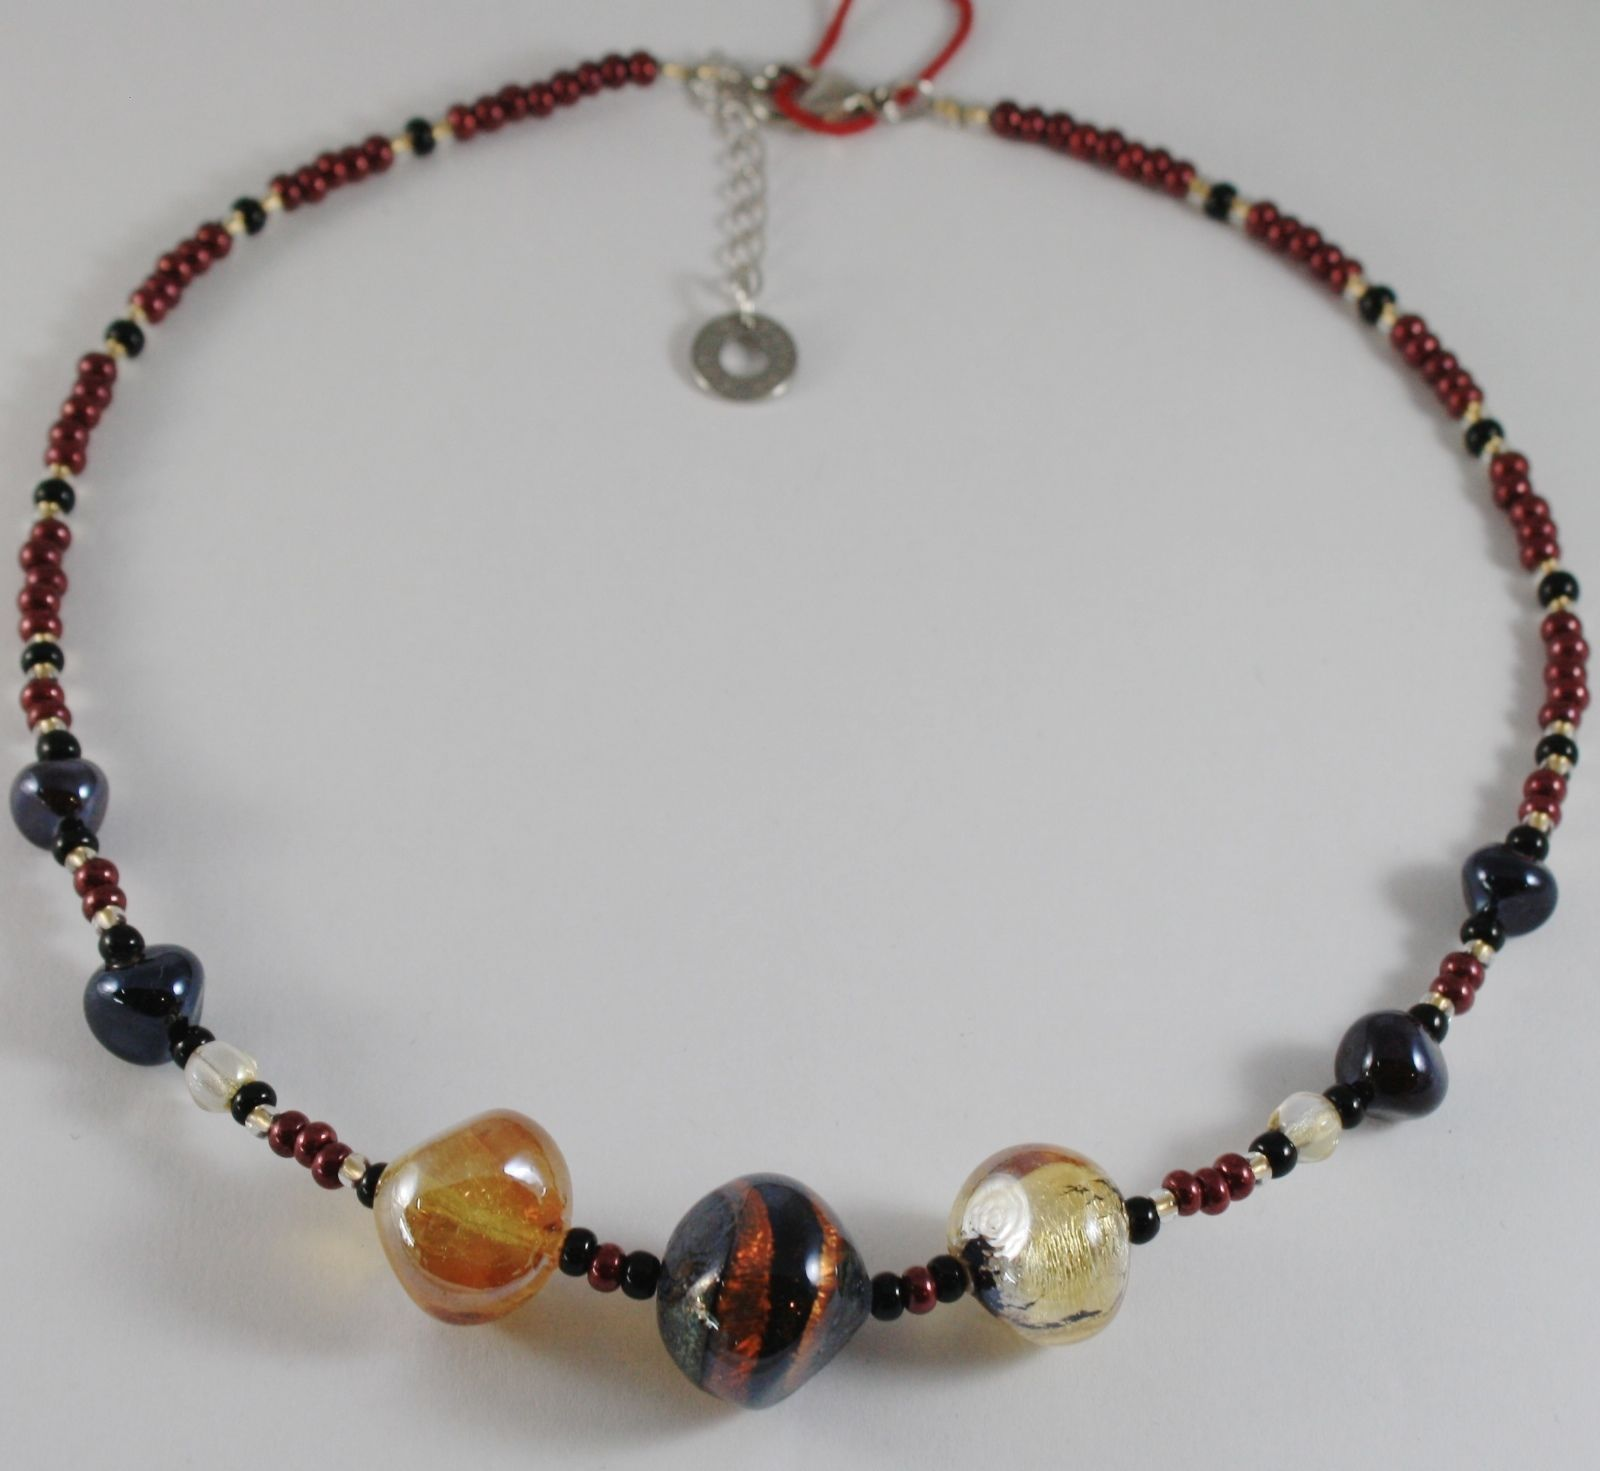 NECKLACE ANTICA MURRINA VENEZIA WITH MURANO GLASS AMBER BEIGE BROWN CO985A10